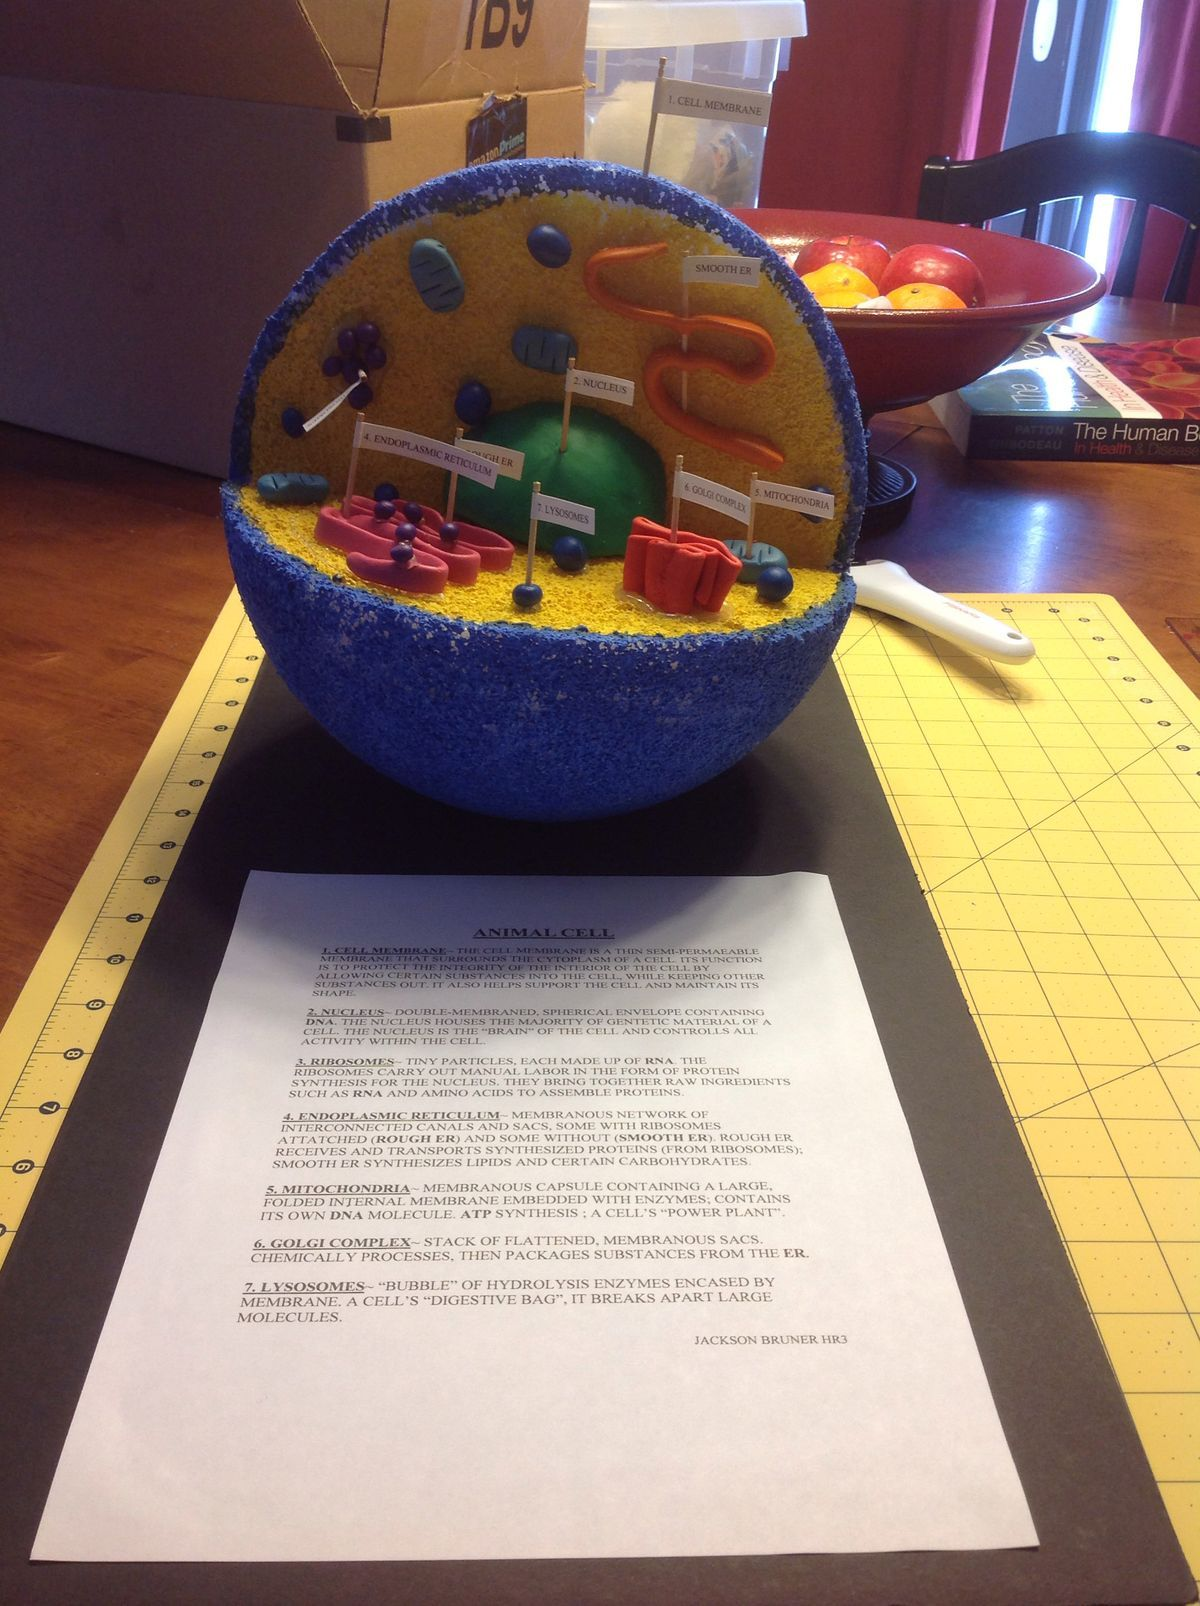 Middle School Life Science Worksheets Animal And Plant Cells - Animal cell project nice idea just a picture not instructions